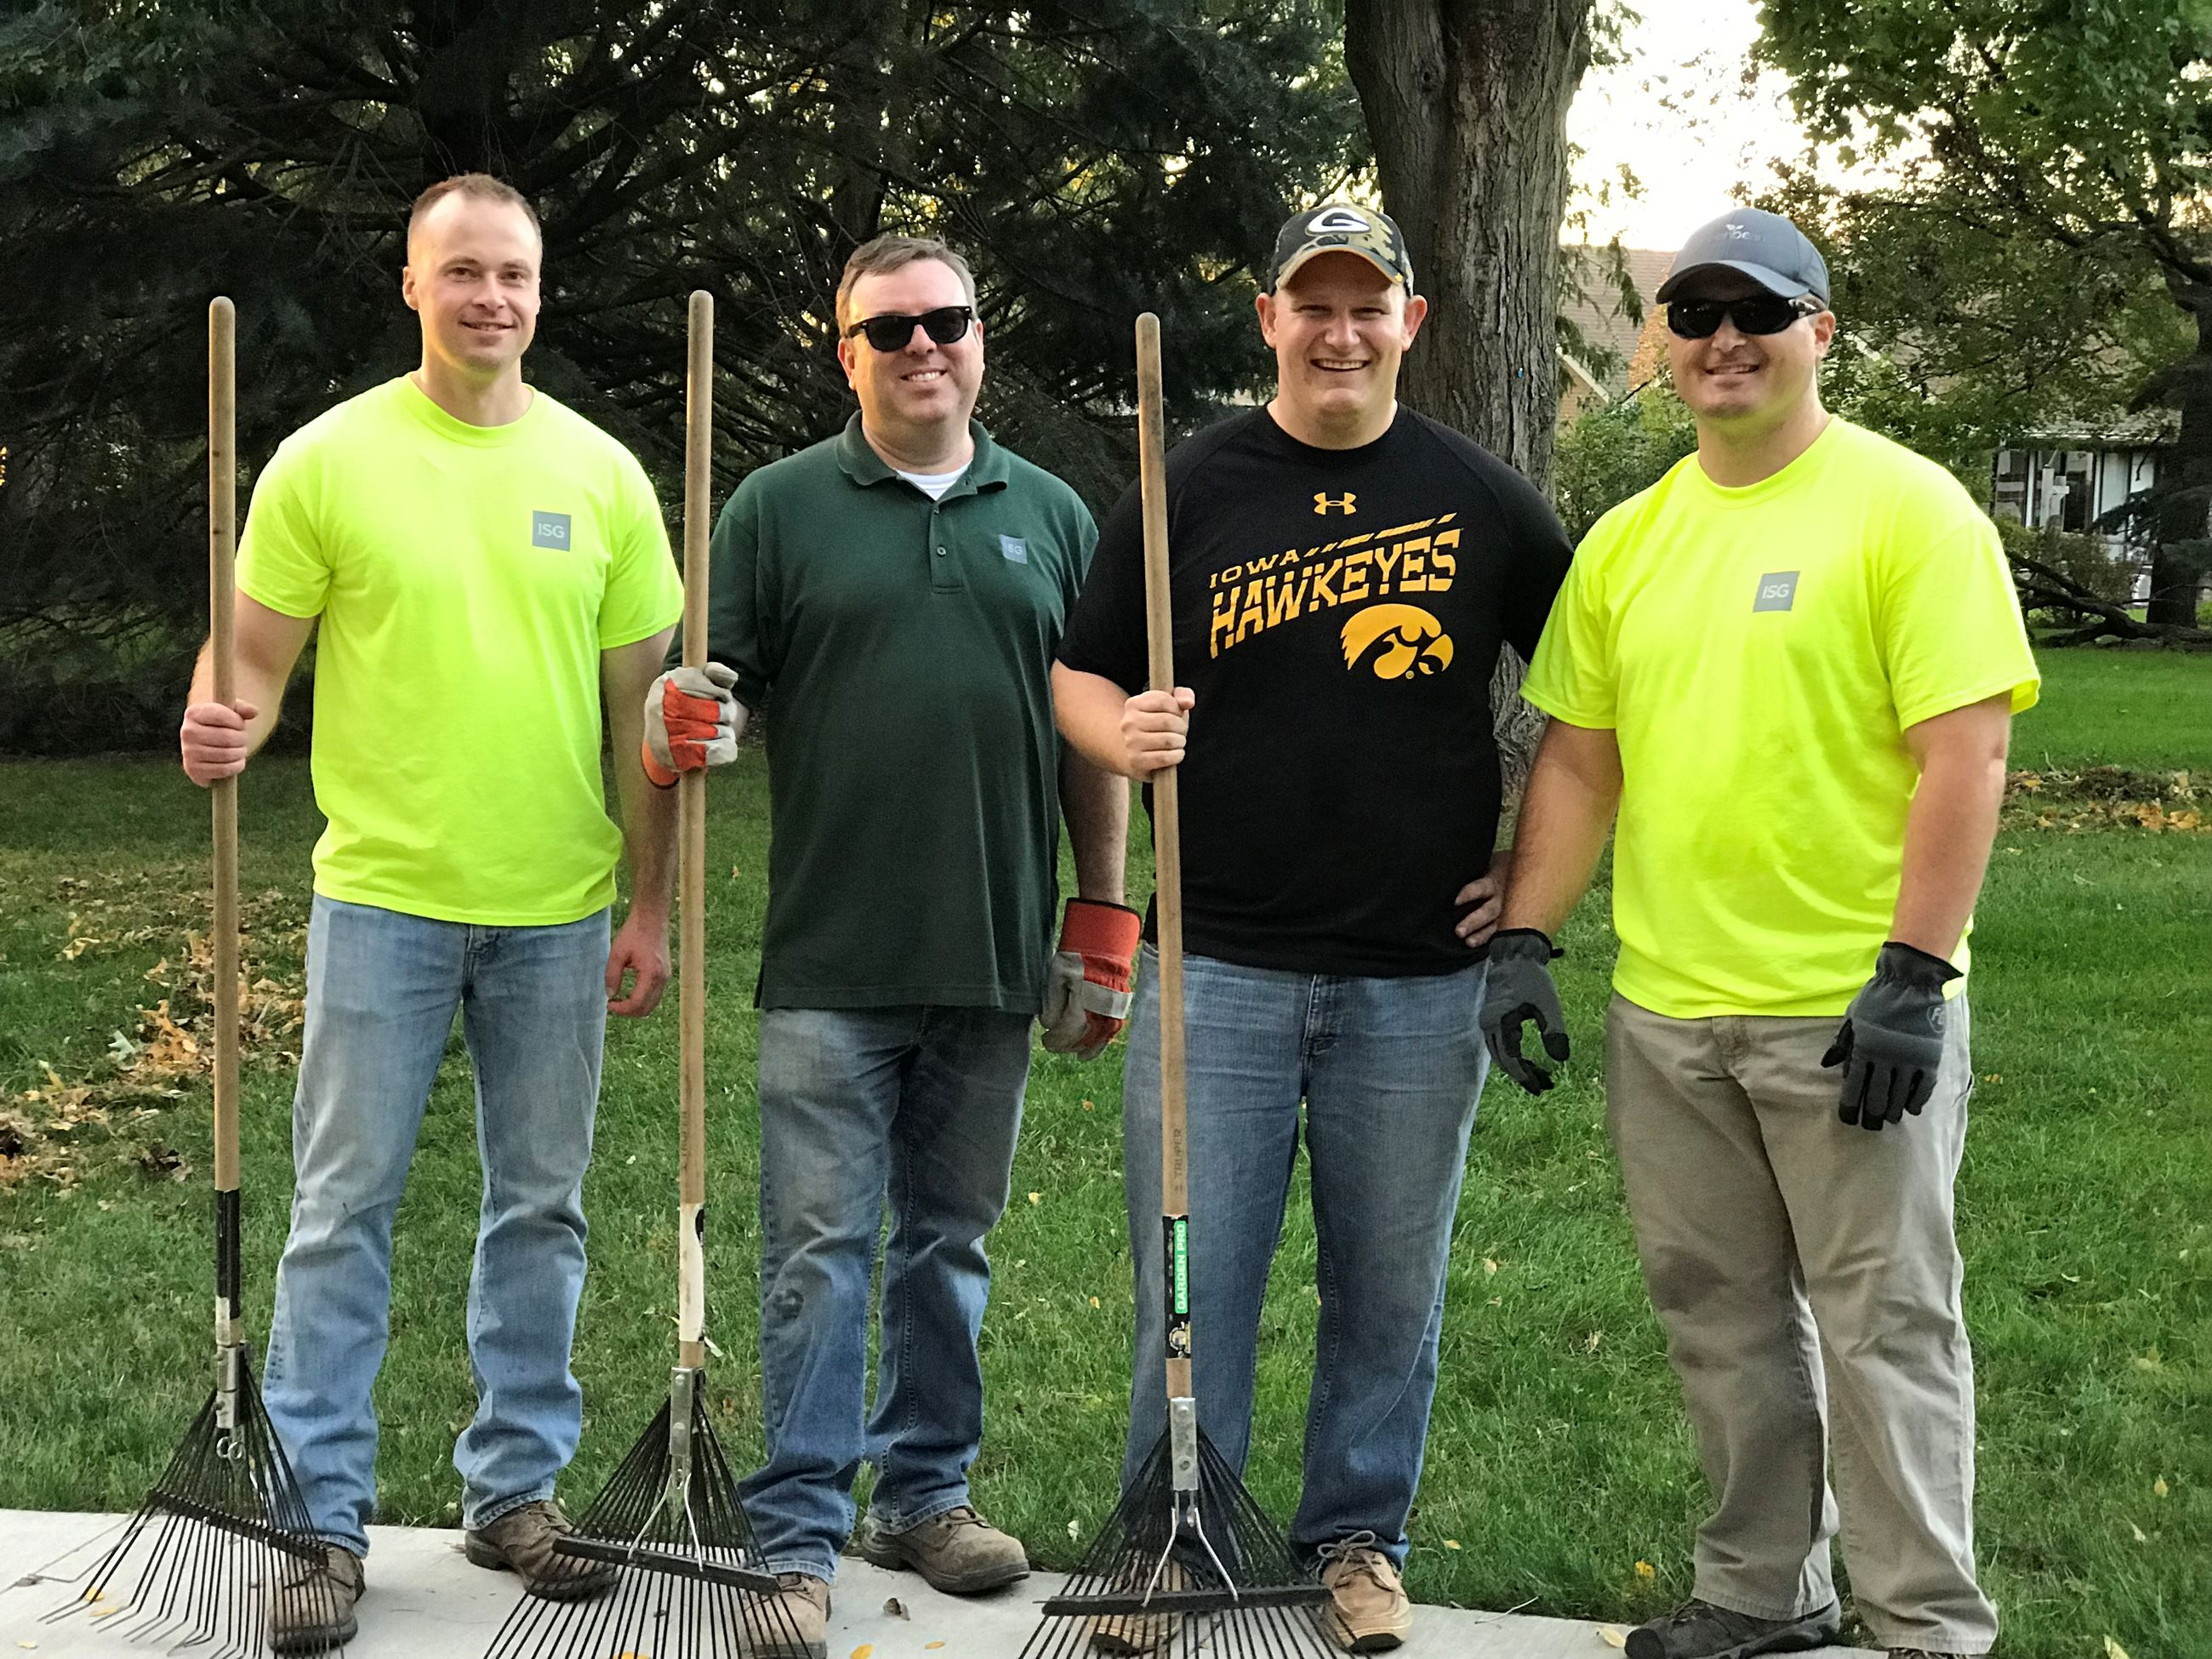 Four Men Help Clean Up Park